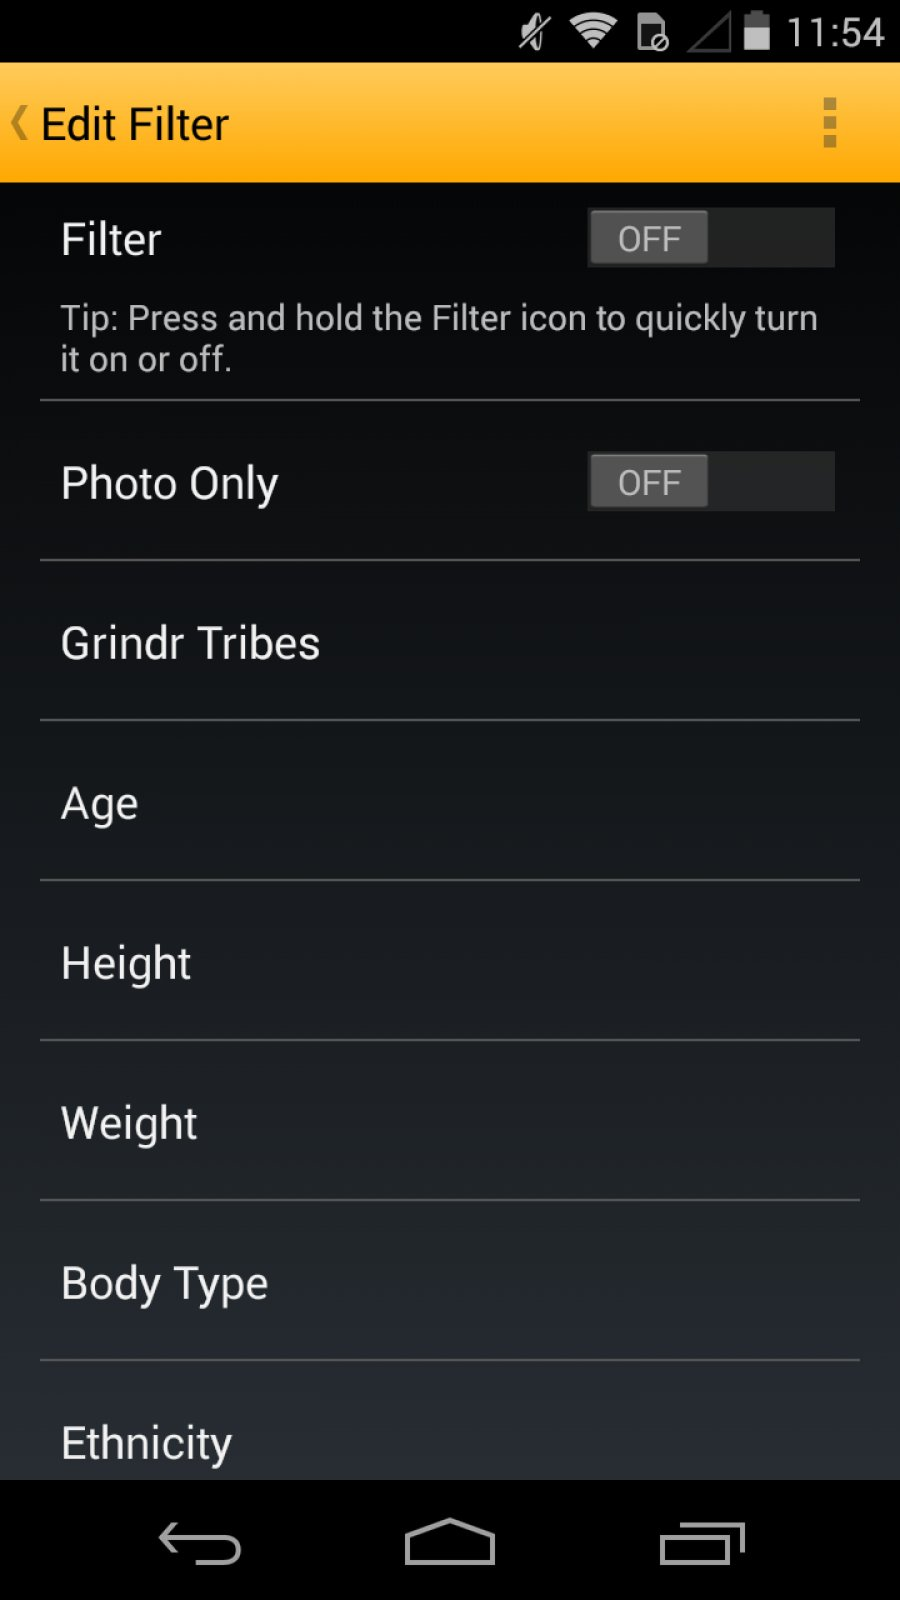 Grindr Xtra Hack Apk For Android Free Download - Approm